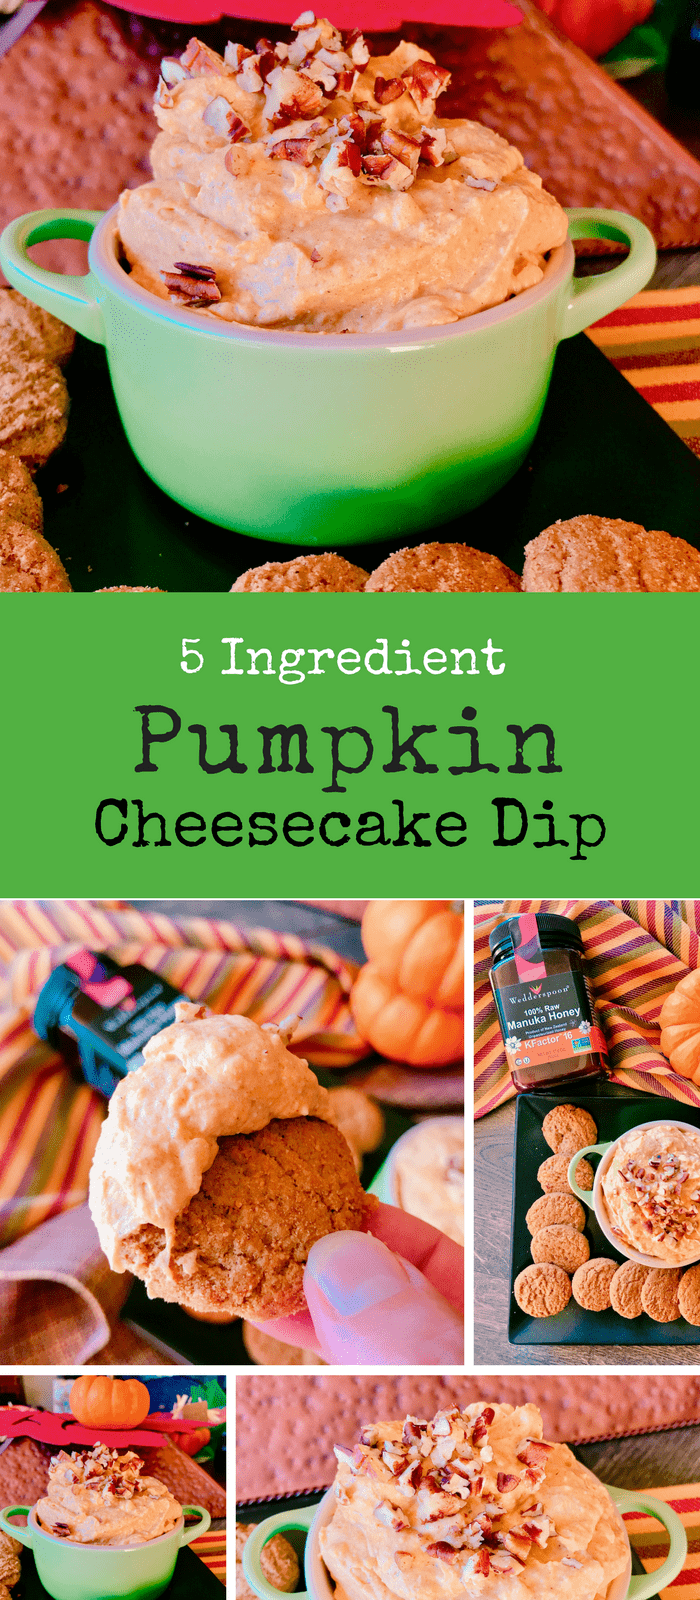 5 Ingredient Pumpkin Cheesecake Dip